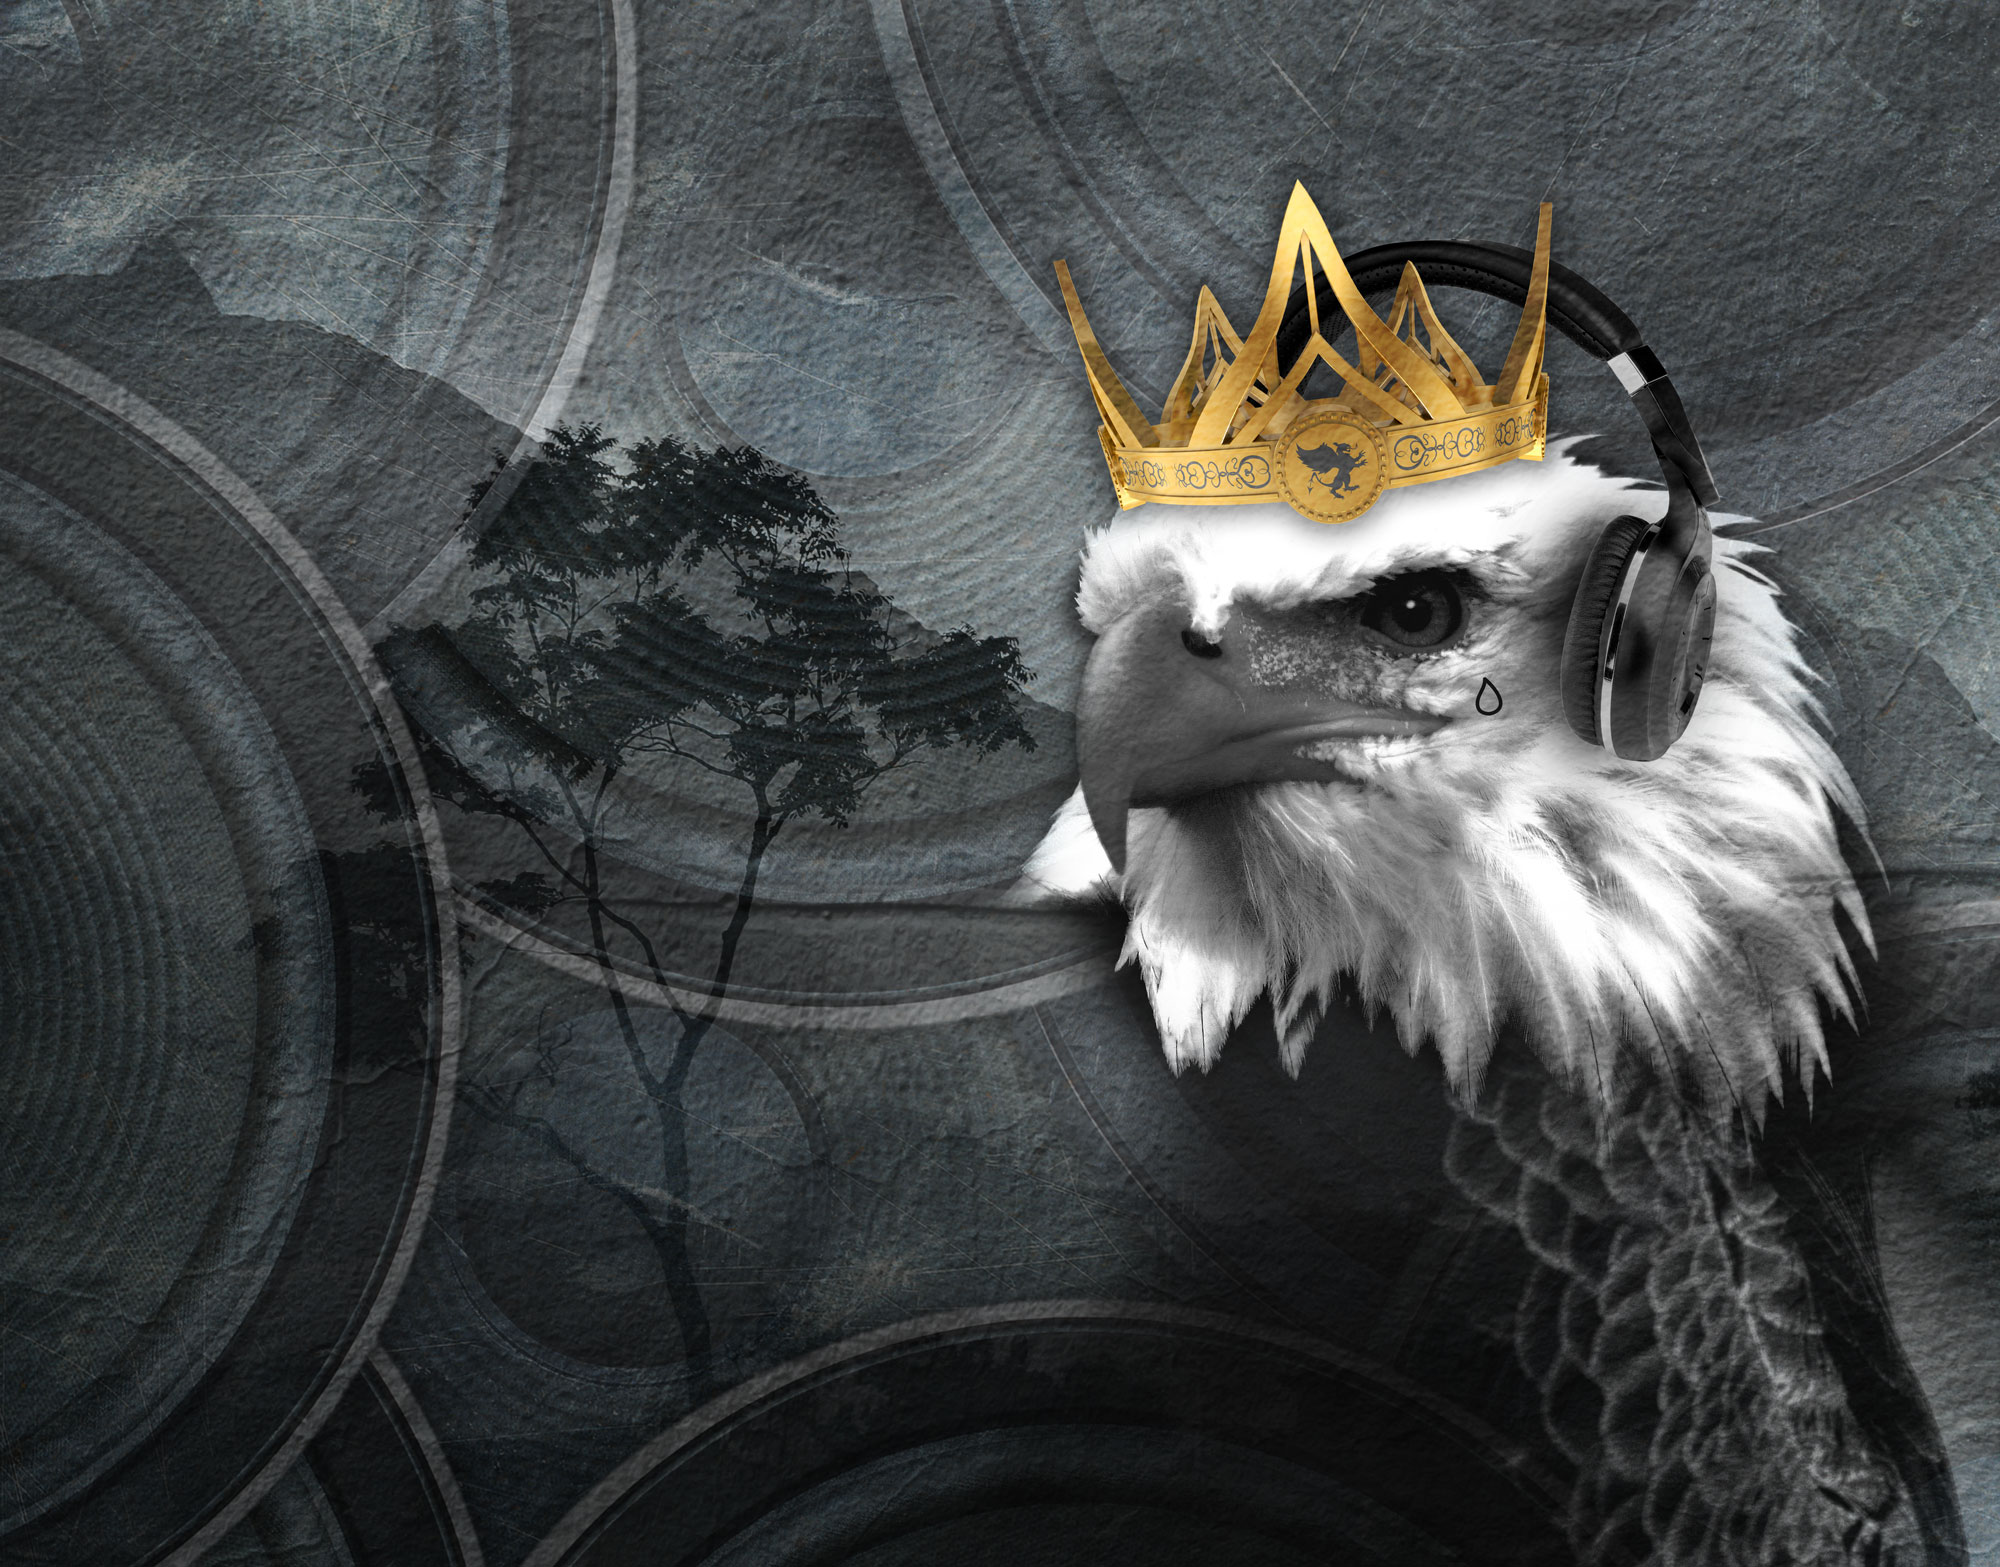 ANIMAL SOUND,  INSPIRATION  A passionate everyday listener and aspiring musician this design was a fun piece to put together. The enlarged eagle that is one of the most powerful birds alive is listening to music through headphones while stalking its prey in the distant tree. The crown on his head shows he's been victorious and the tear drop tattoo shows he has lost as well.